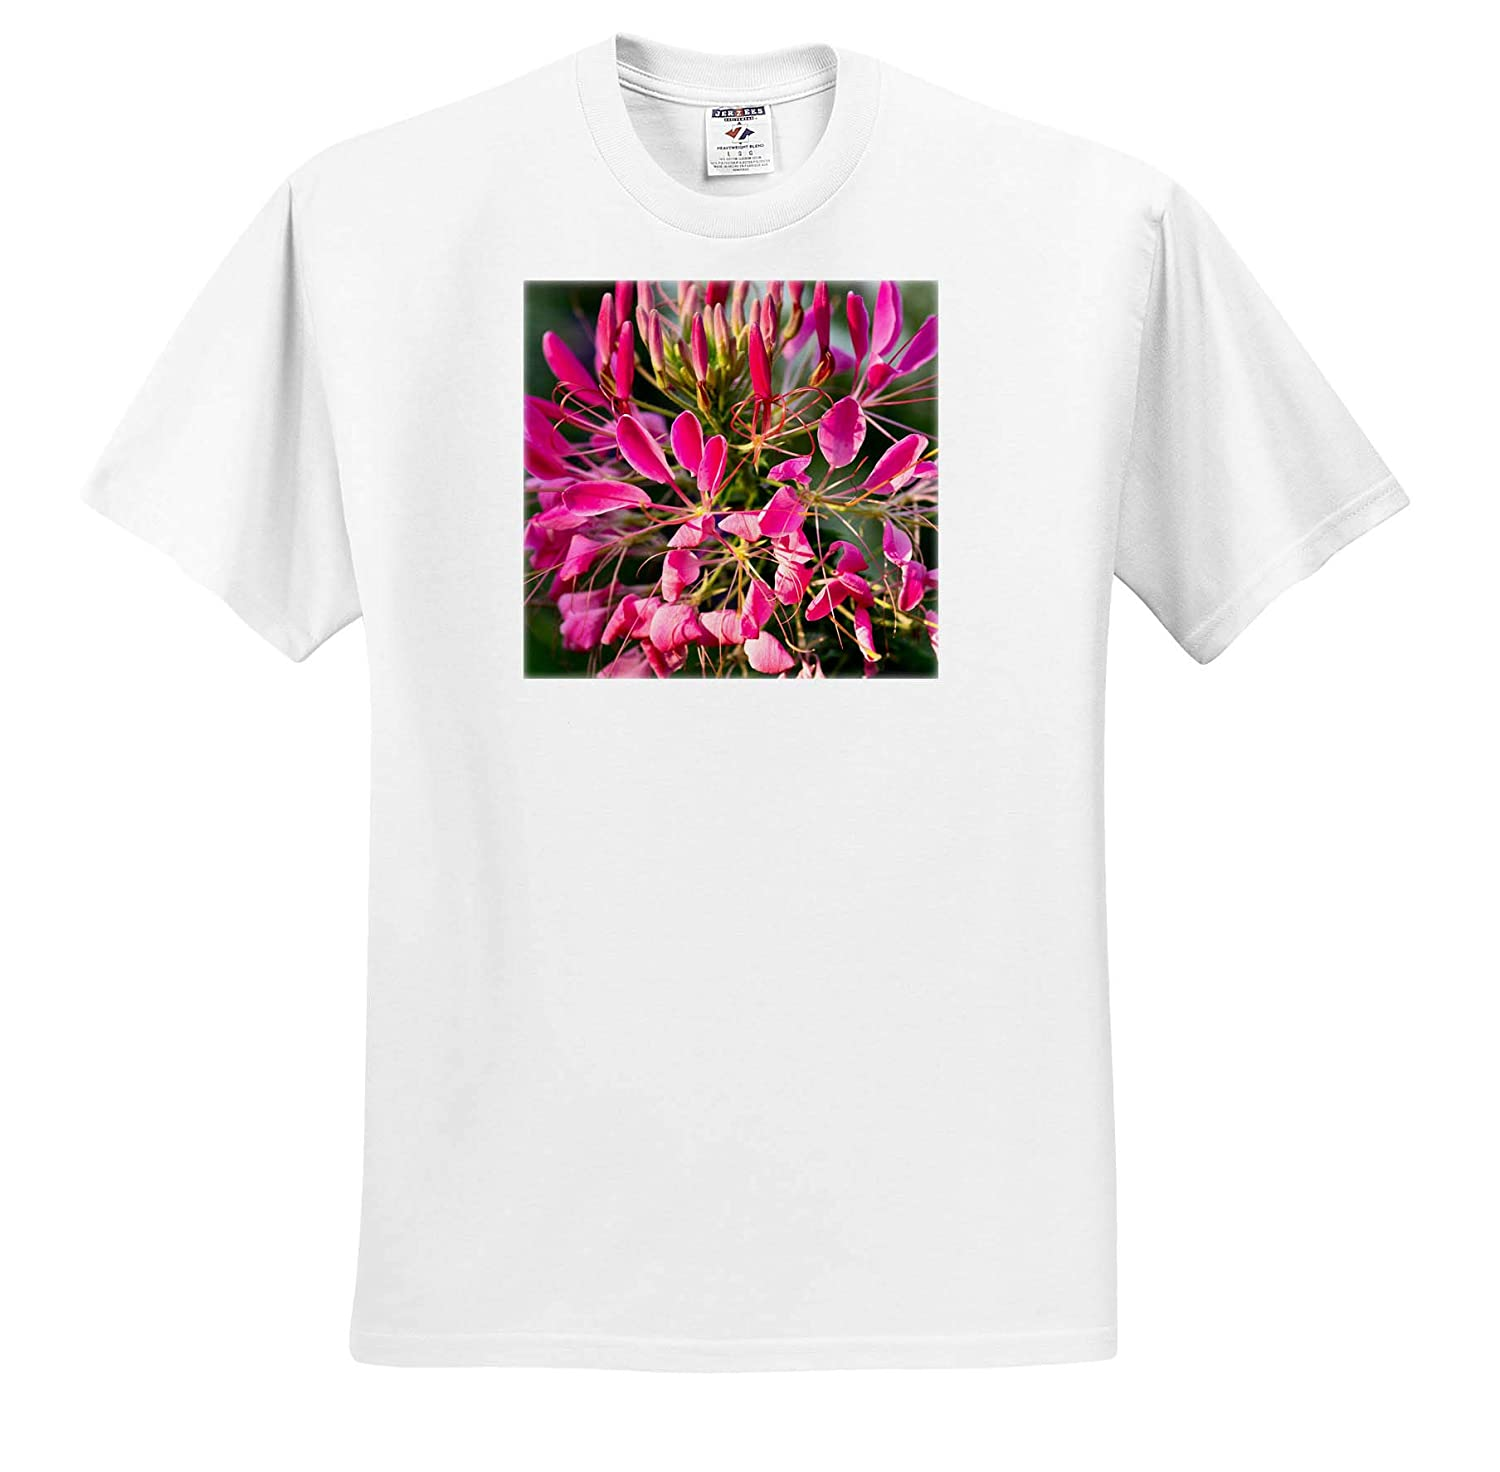 Pink Decorative Flowers T-Shirts Flowers Sunny Day in The Garden Closeup View 3dRose Alexis Photography